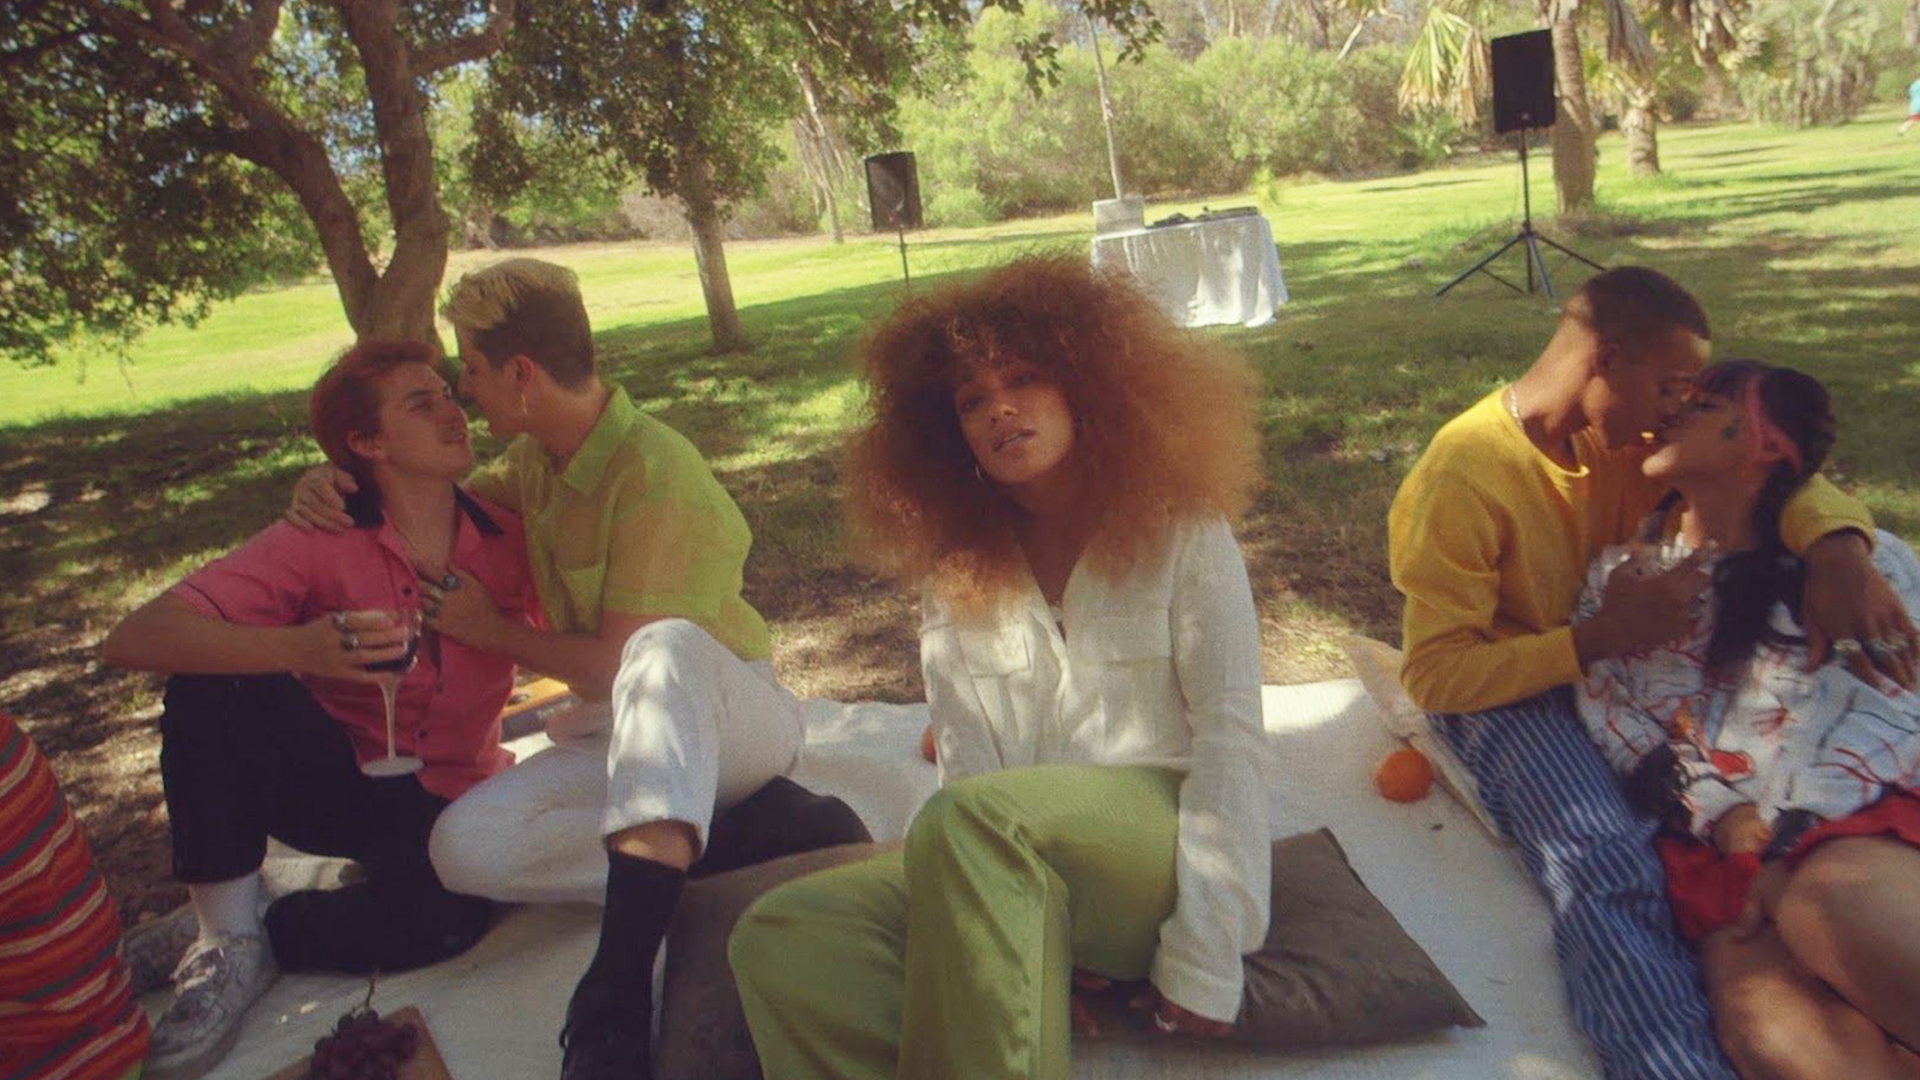 Starley - feature artist of the month